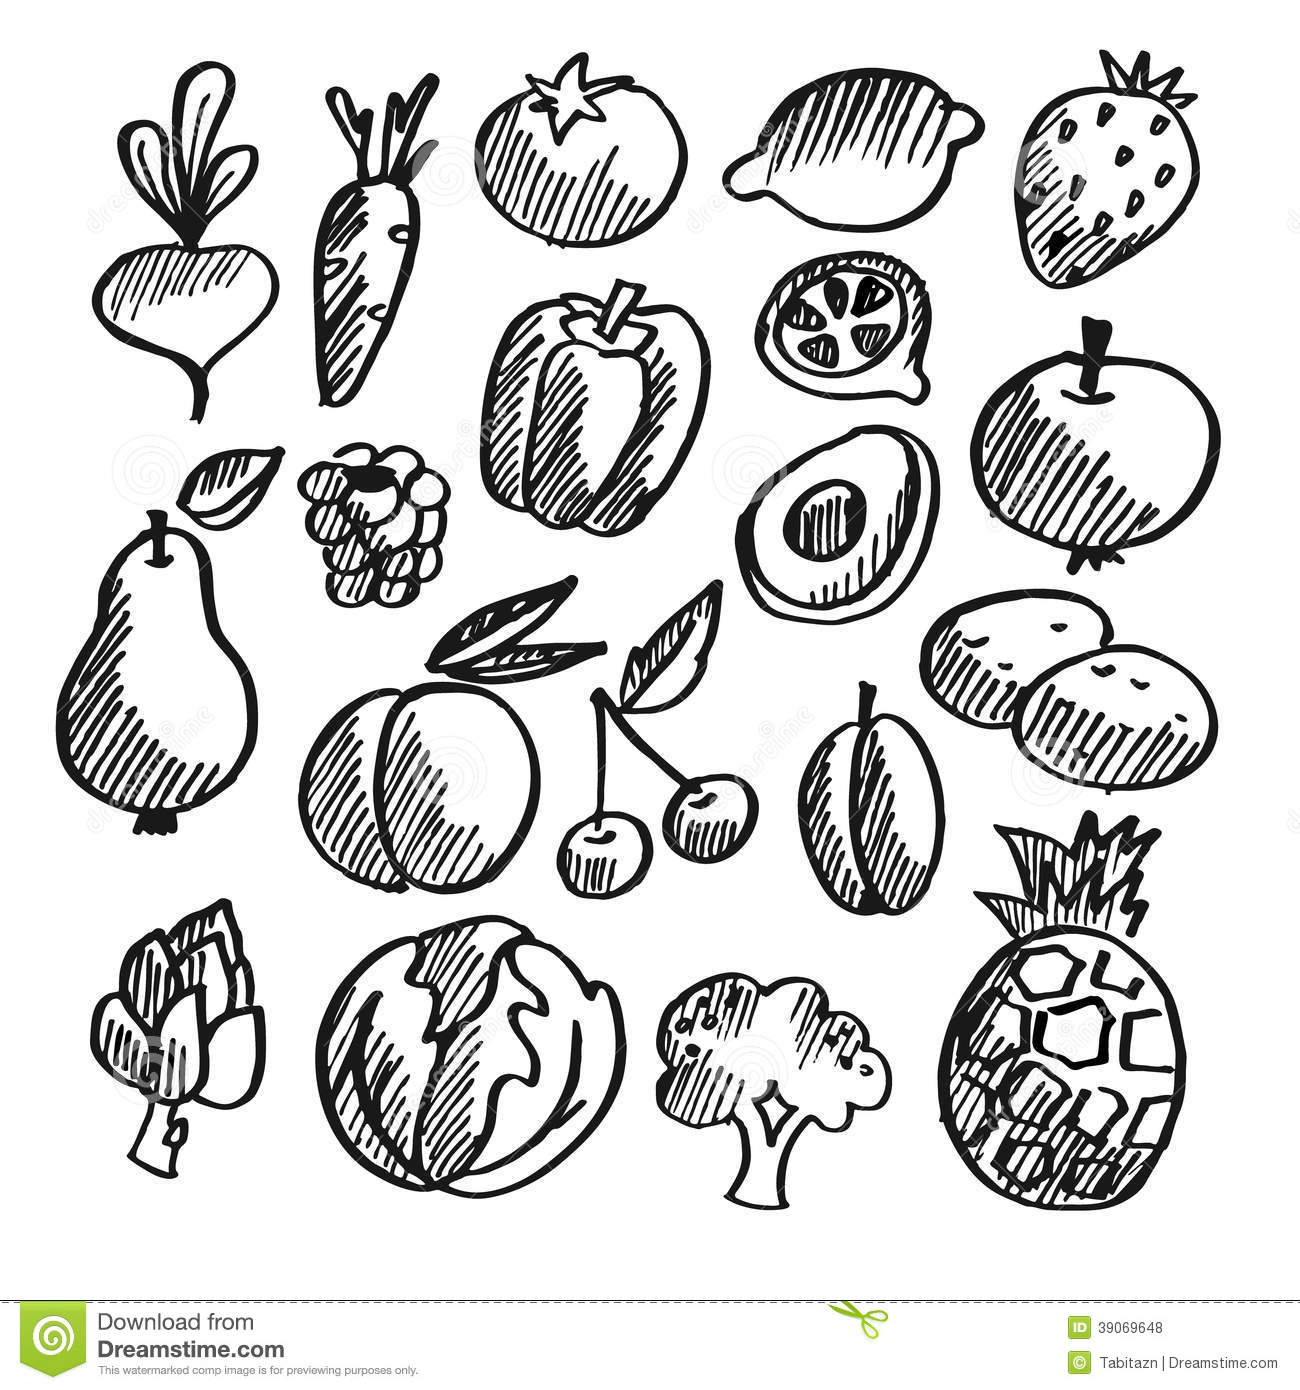 PNG Vegetables And Fruits Black And White - 54845